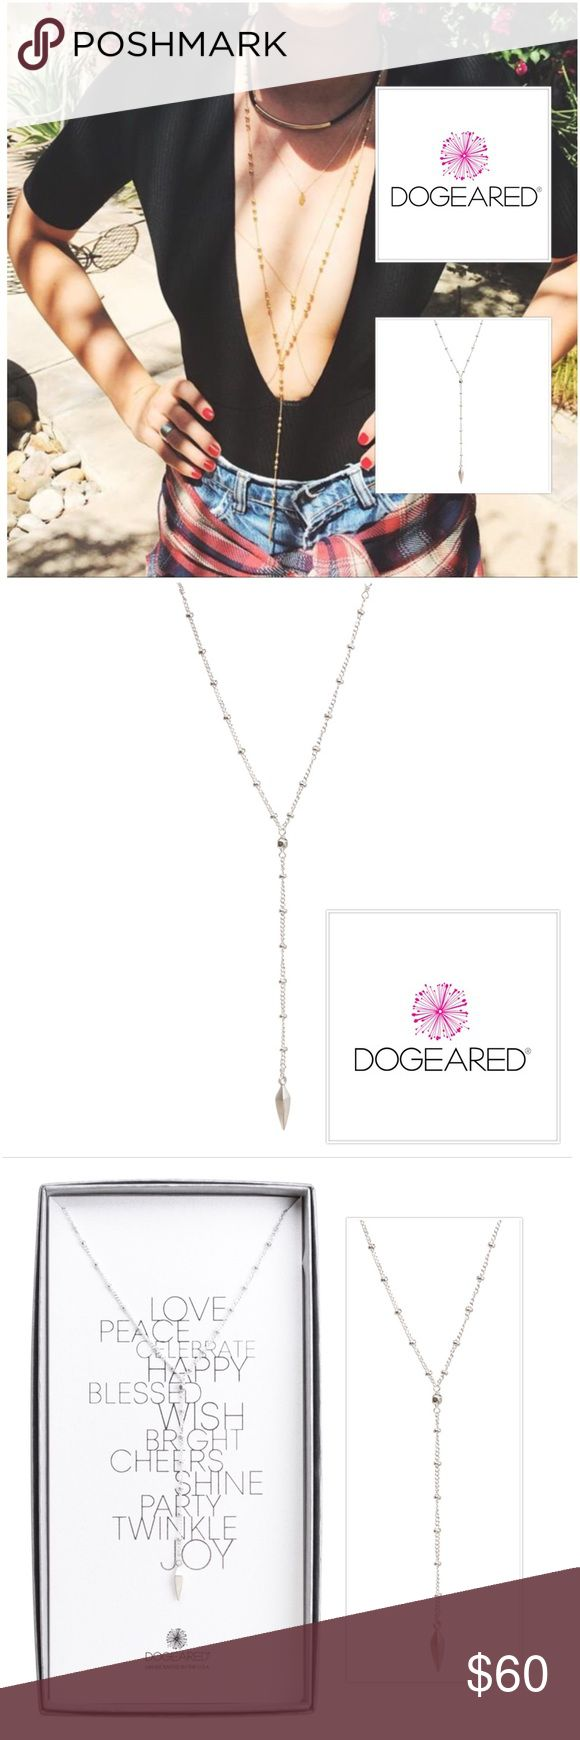 """Dogeared Beaded Y-Necklace Spear Sterling Silver Make a statement with next level details on the silhouette you absolutely need. Edgy charm on a cool chain… Y-Essential necklaces have it all. Create your own layers of love or let this spear-accented style stand out on its own.  35"""" sterling silver beaded chain 3"""" chain drop 12mm sterling silver faceted spear charm no clasp for closure, slips over your head love peace message card packaged in dogeared gift box Dogeared Jewelry Necklaces"""